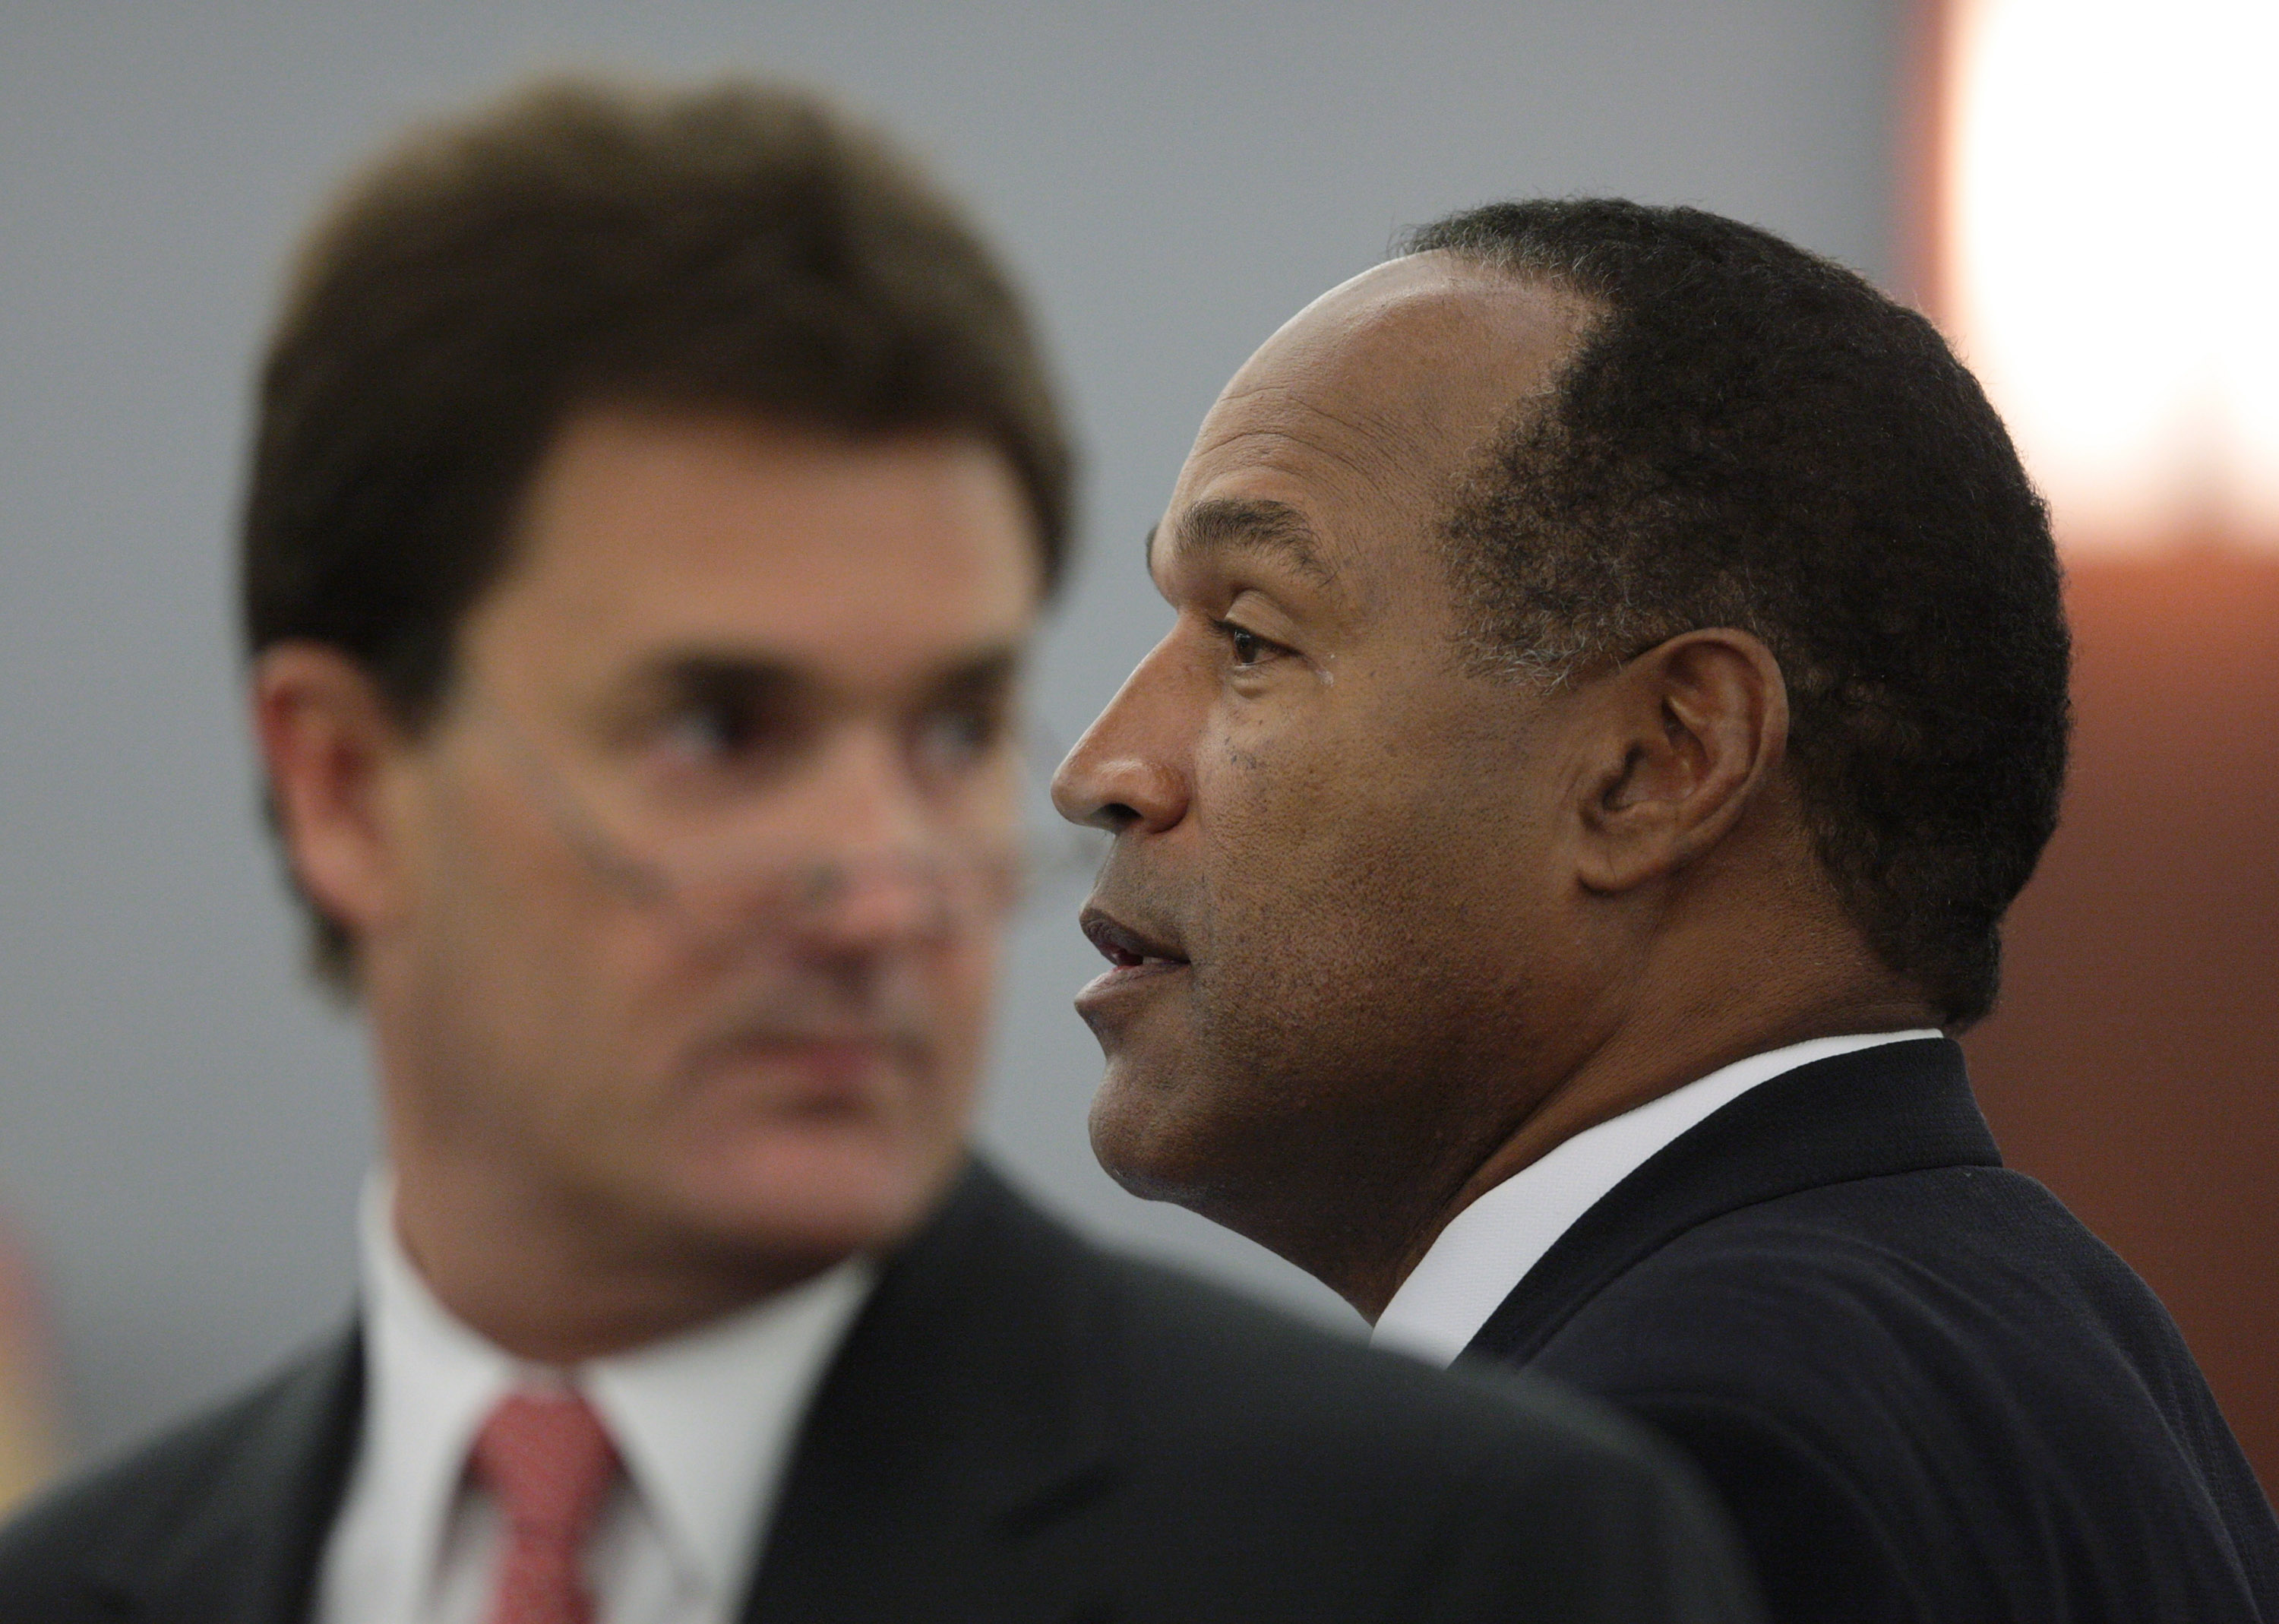 O.J. Simpson and his attorney Yale Galanter, here pictured in 2001. (Getty Images)